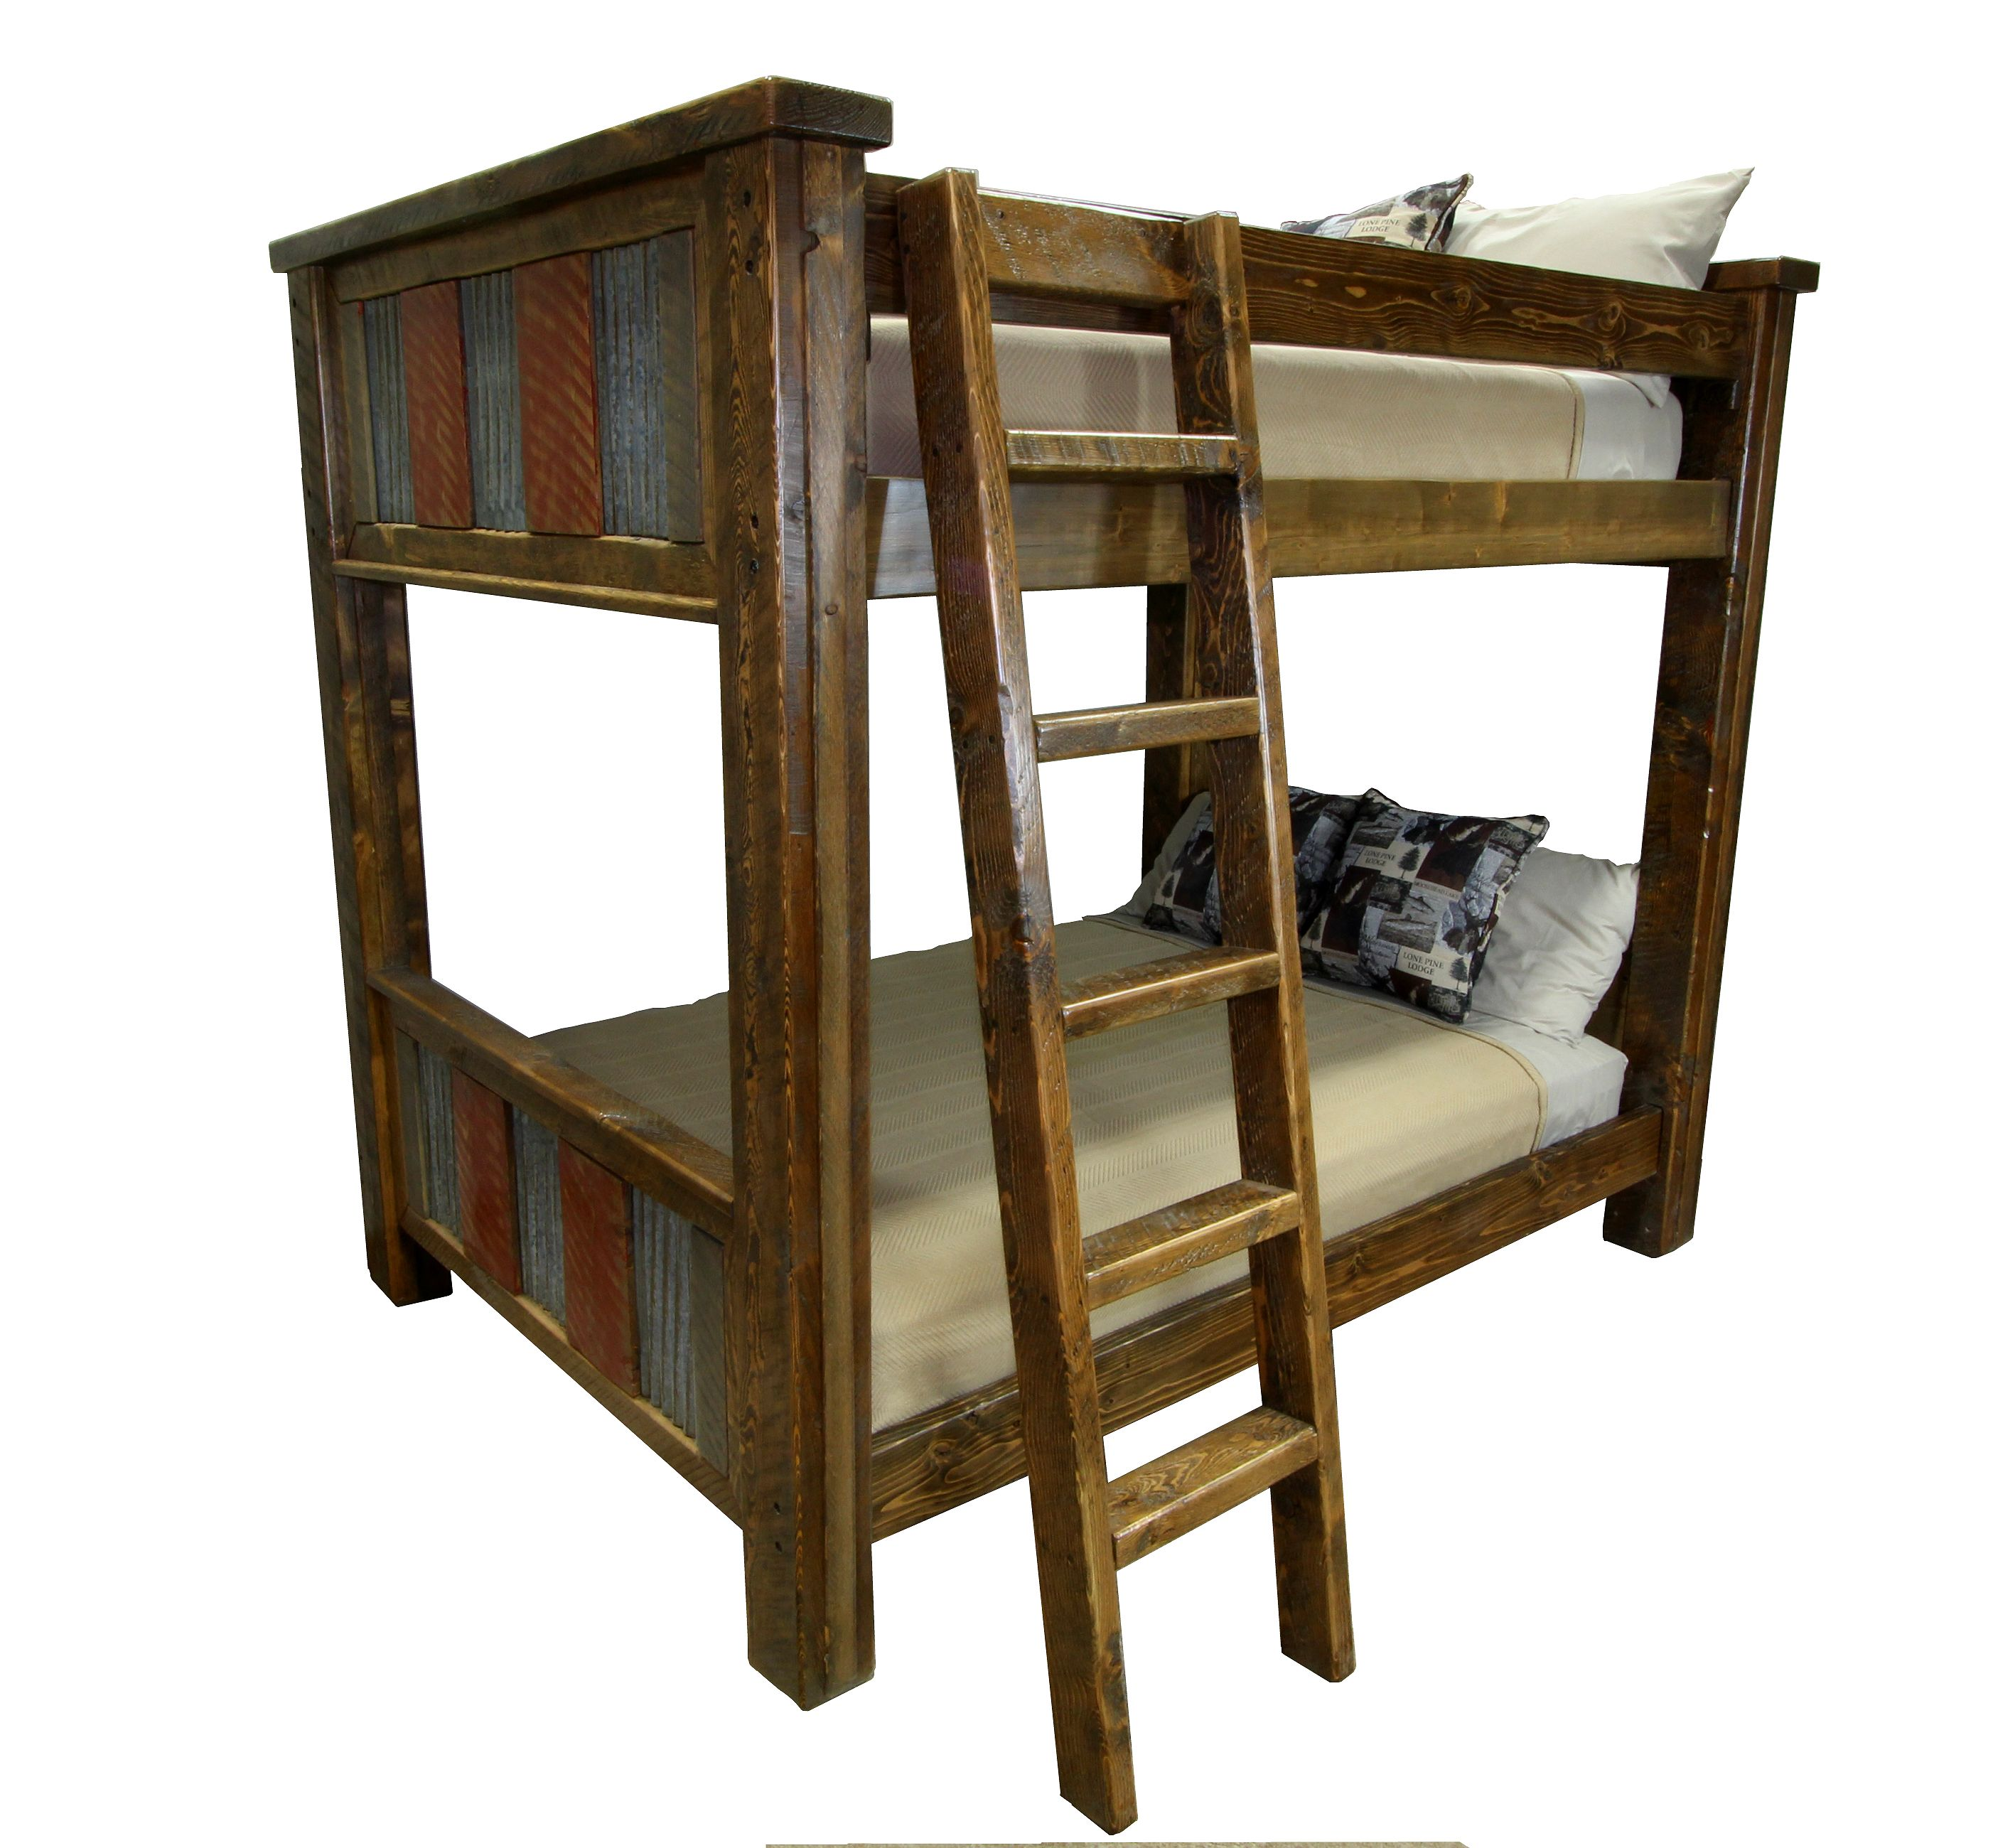 Rustic Metal And Wood Bunk Bed Shown With Detachable Ladder On Front